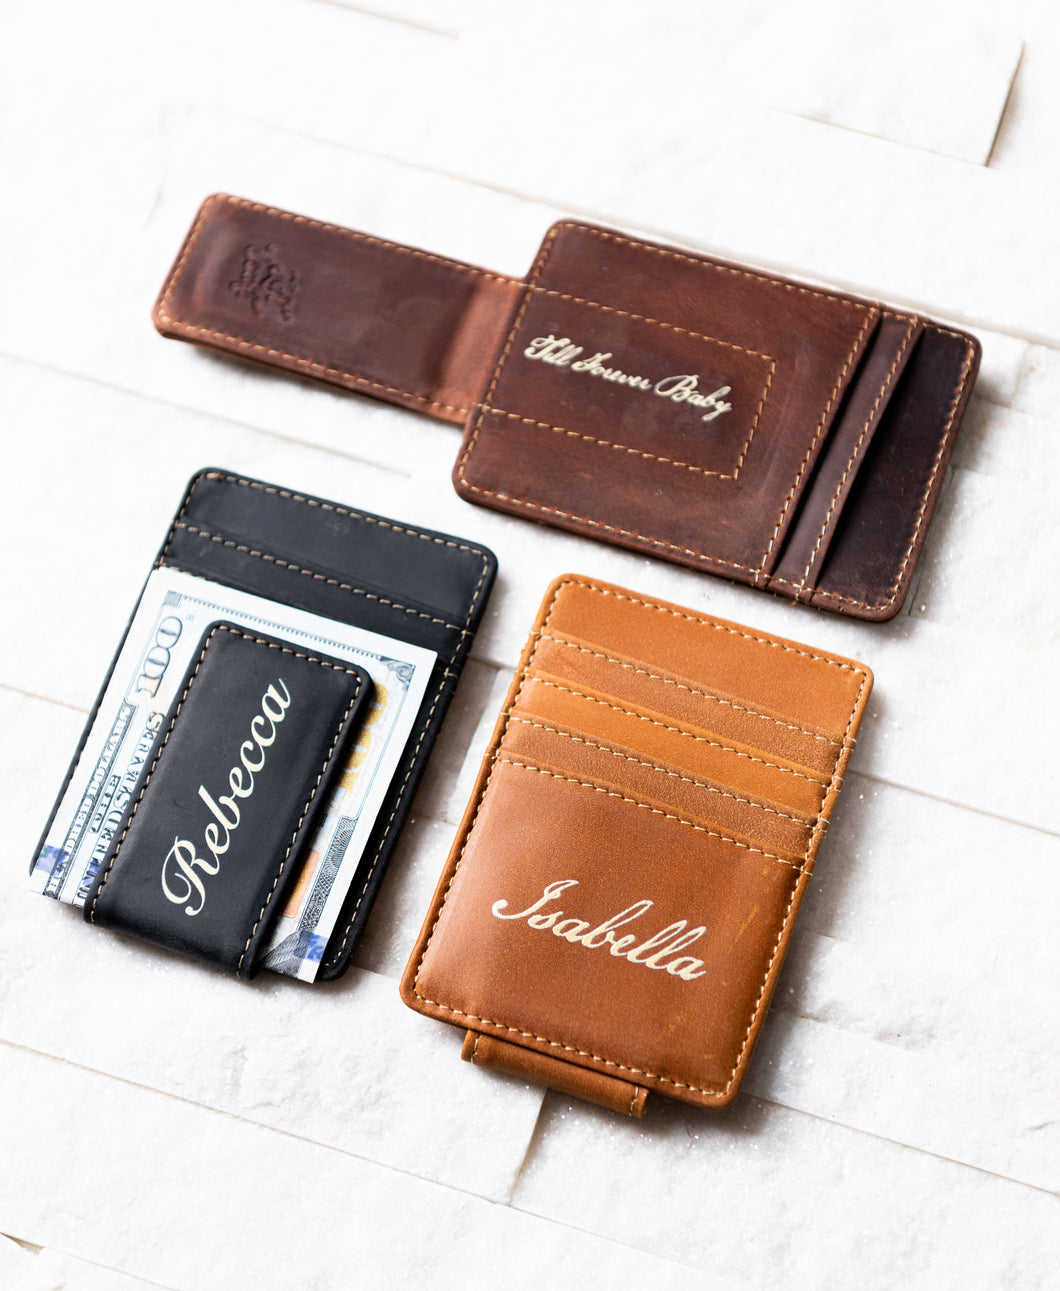 Three Inked Message Magnetic Leather Money Clips